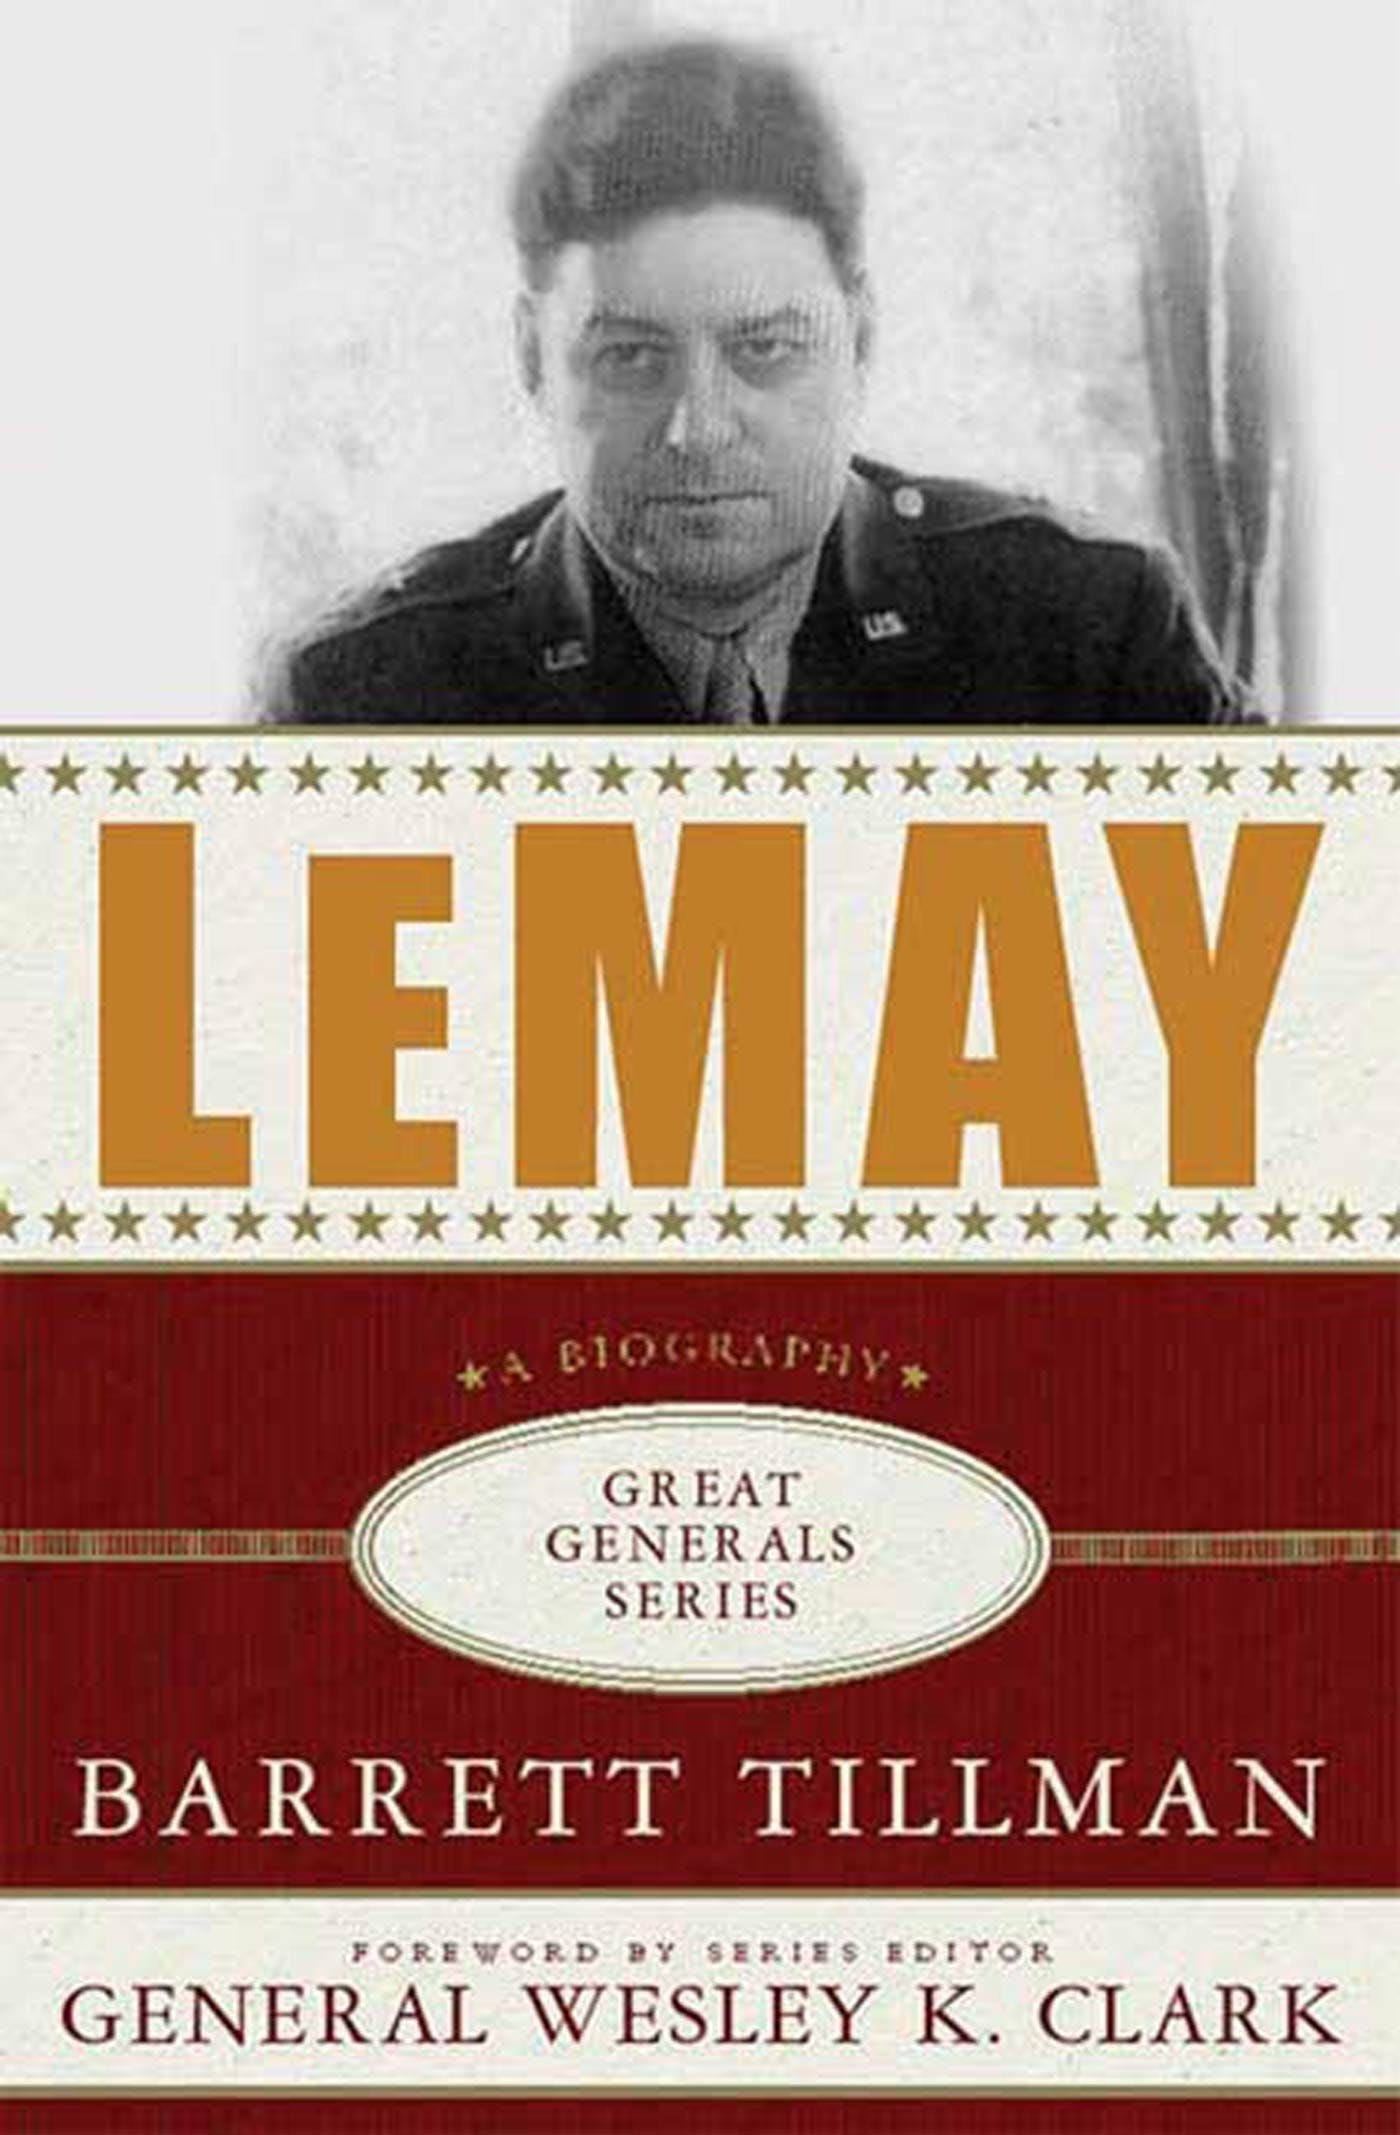 Image of LeMay: A Biography